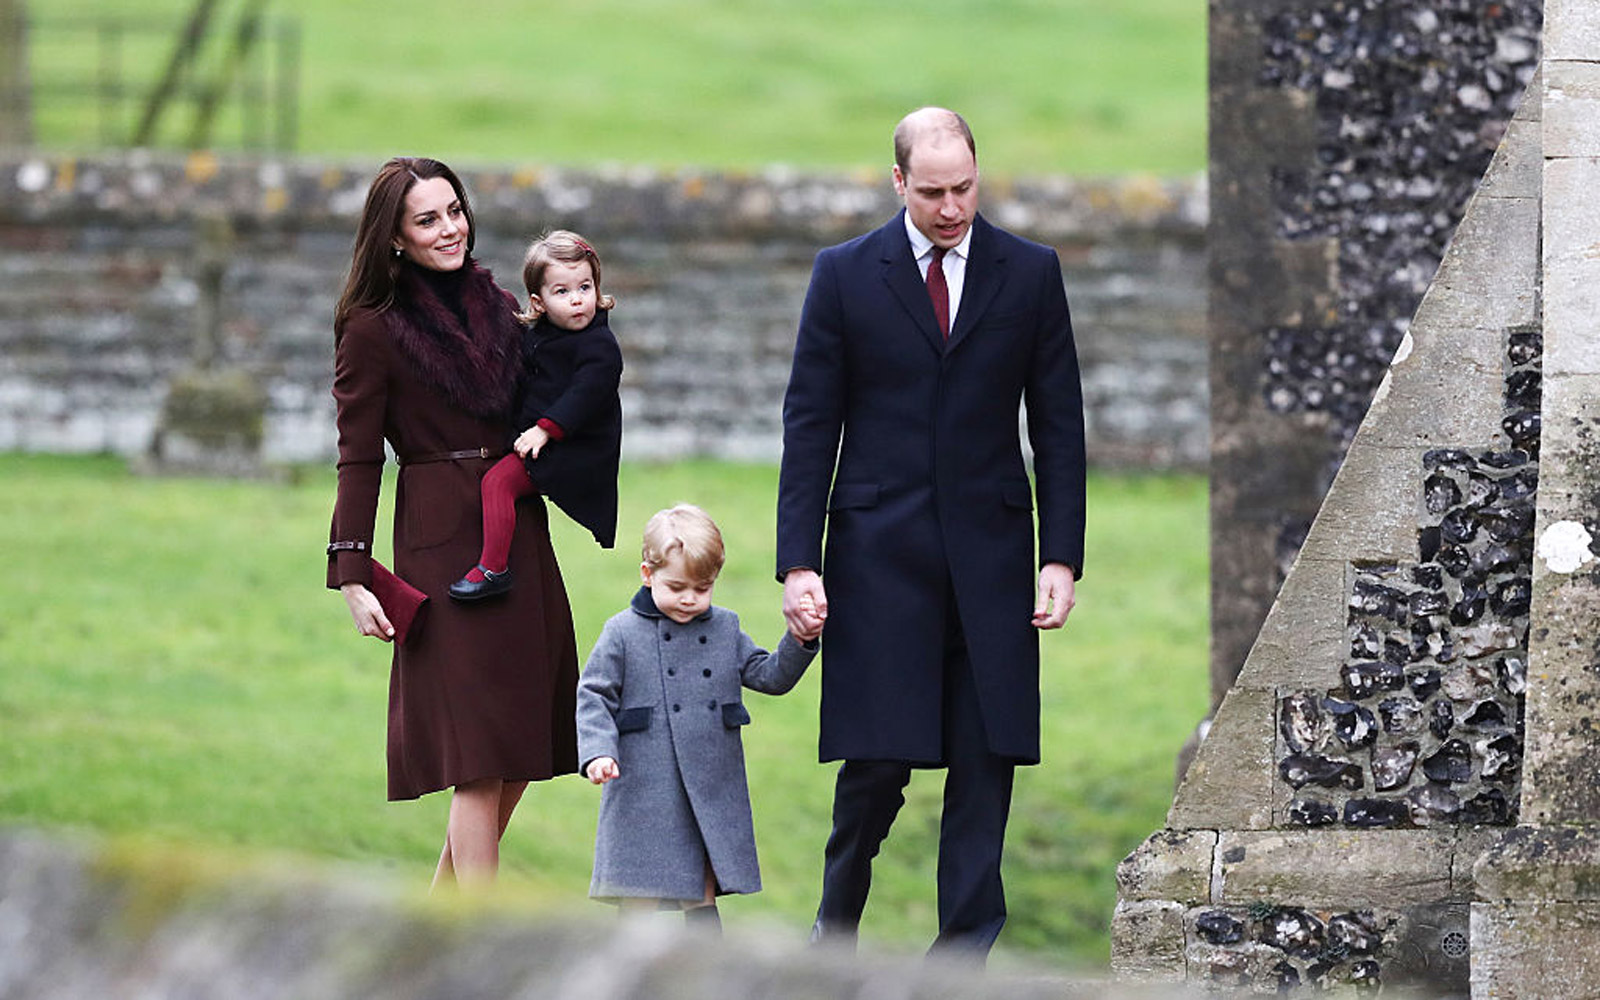 BUCKLEBURY, BERKSHIRE - DECEMBER 25:  Catherine, Duchess of Cambridge and Prince William, Duke of Cambridge, Prince George of Cambridge and Princess Charlotte of Cambridge arrive to attend the service at St Mark's Church on Christmas Day on December 25, 2